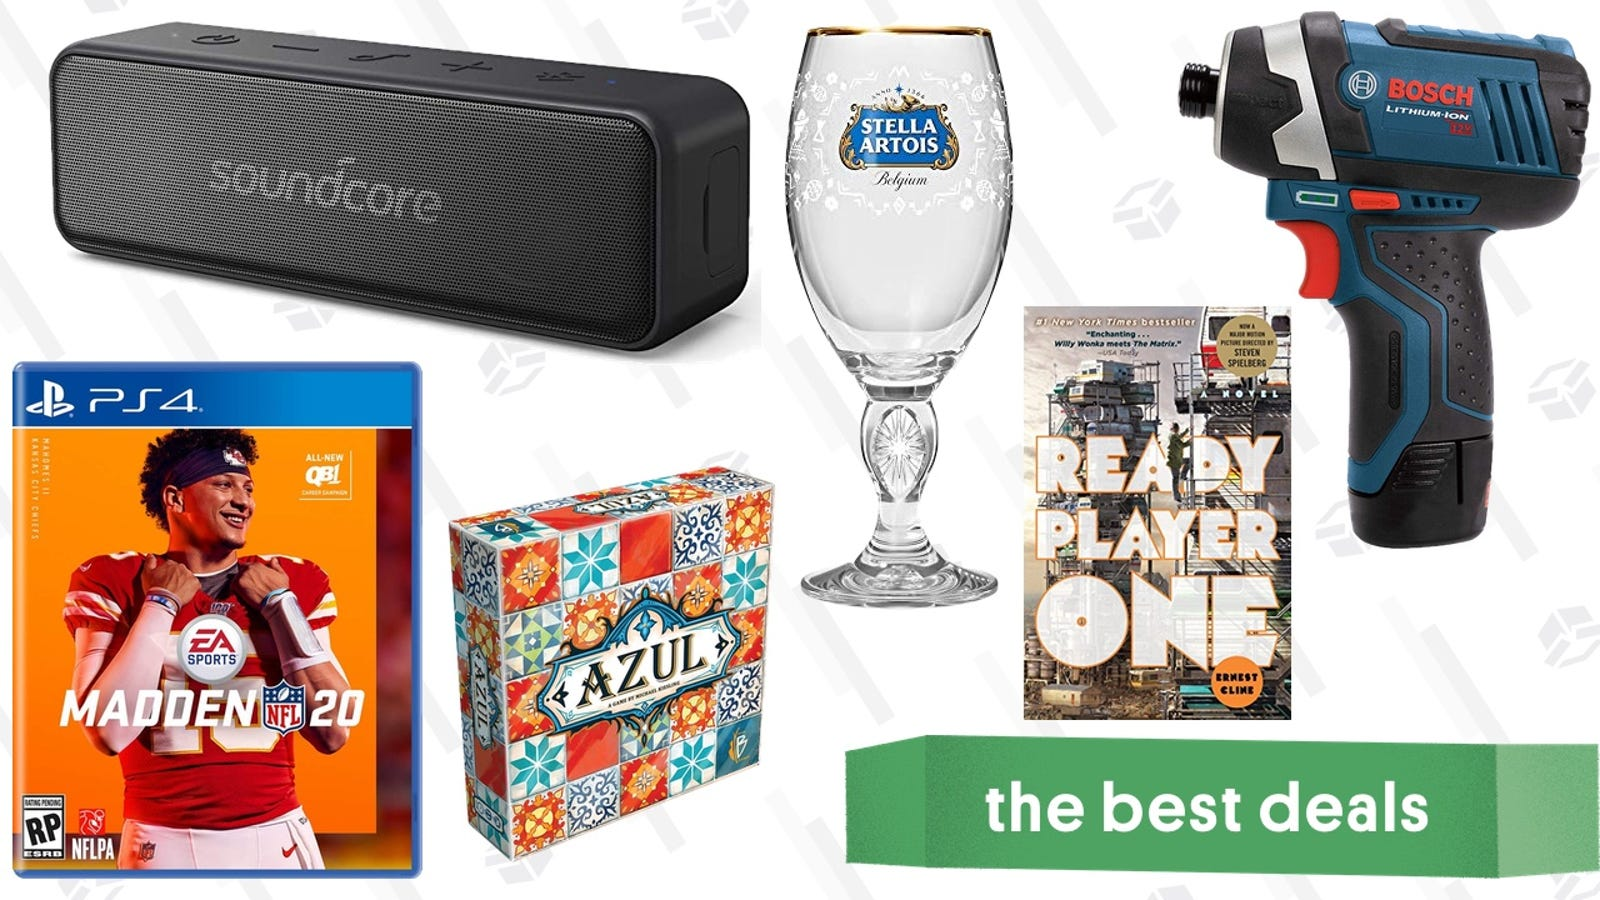 QnA VBage Sunday's Best Deals: Waterproof Speaker, Bosch Tools, DIY Ice Cream, Kindle Bestsellers, and More